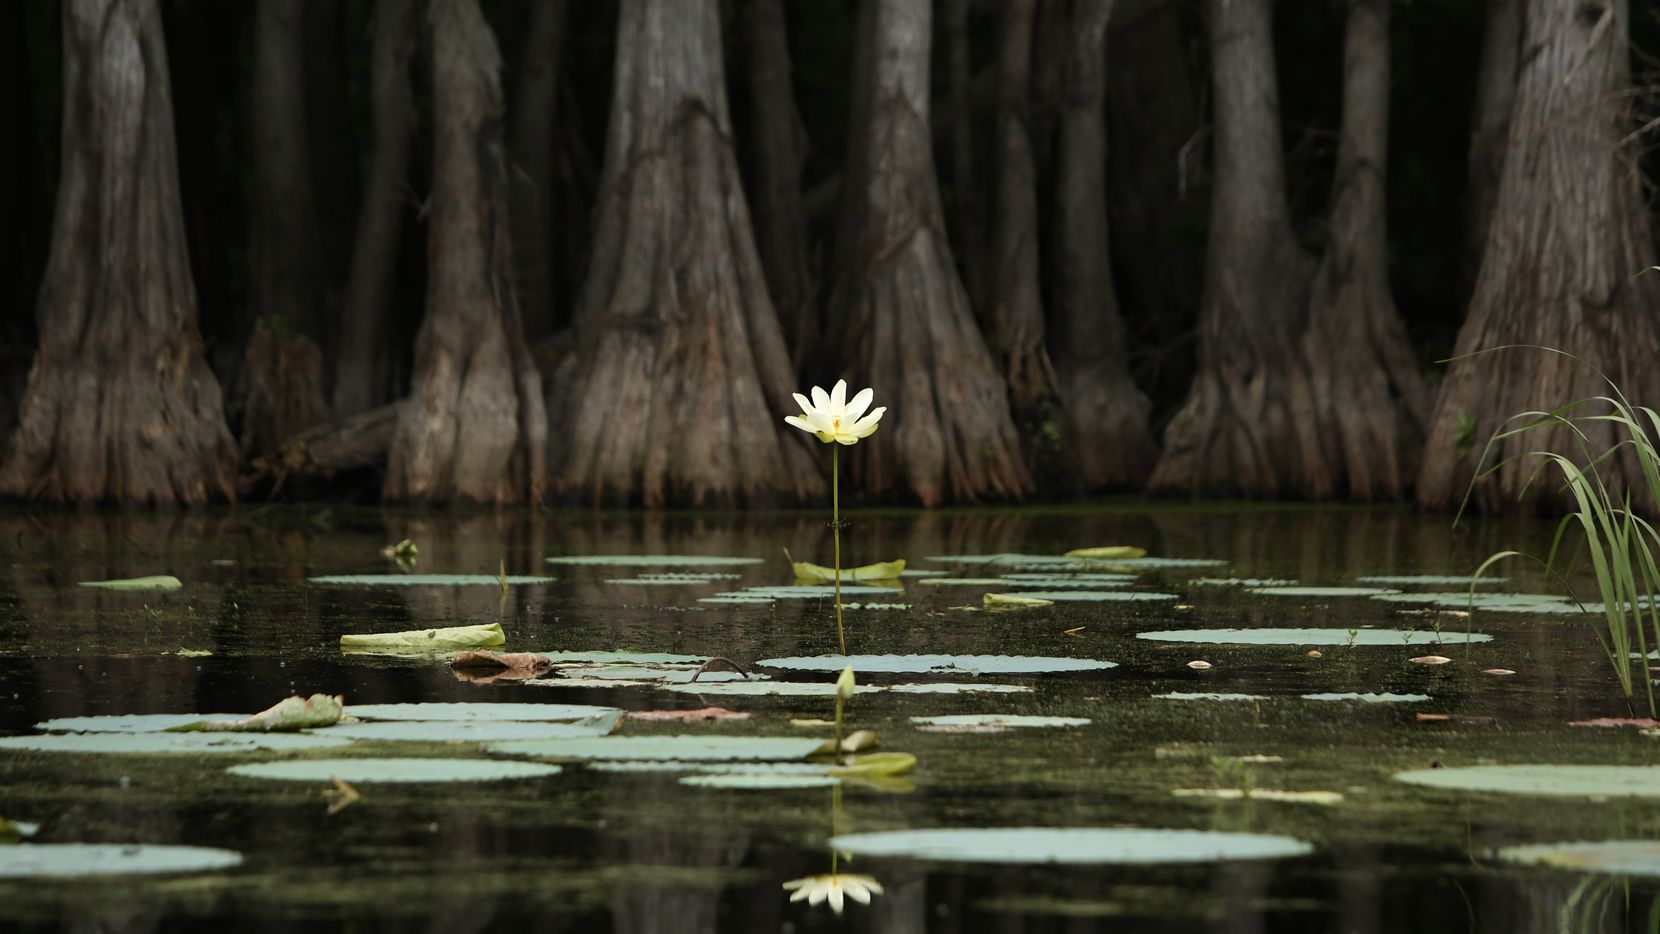 Flora is everywhere on Caddo Lake in Uncertain, Texas Tuesday June 26, 2018.